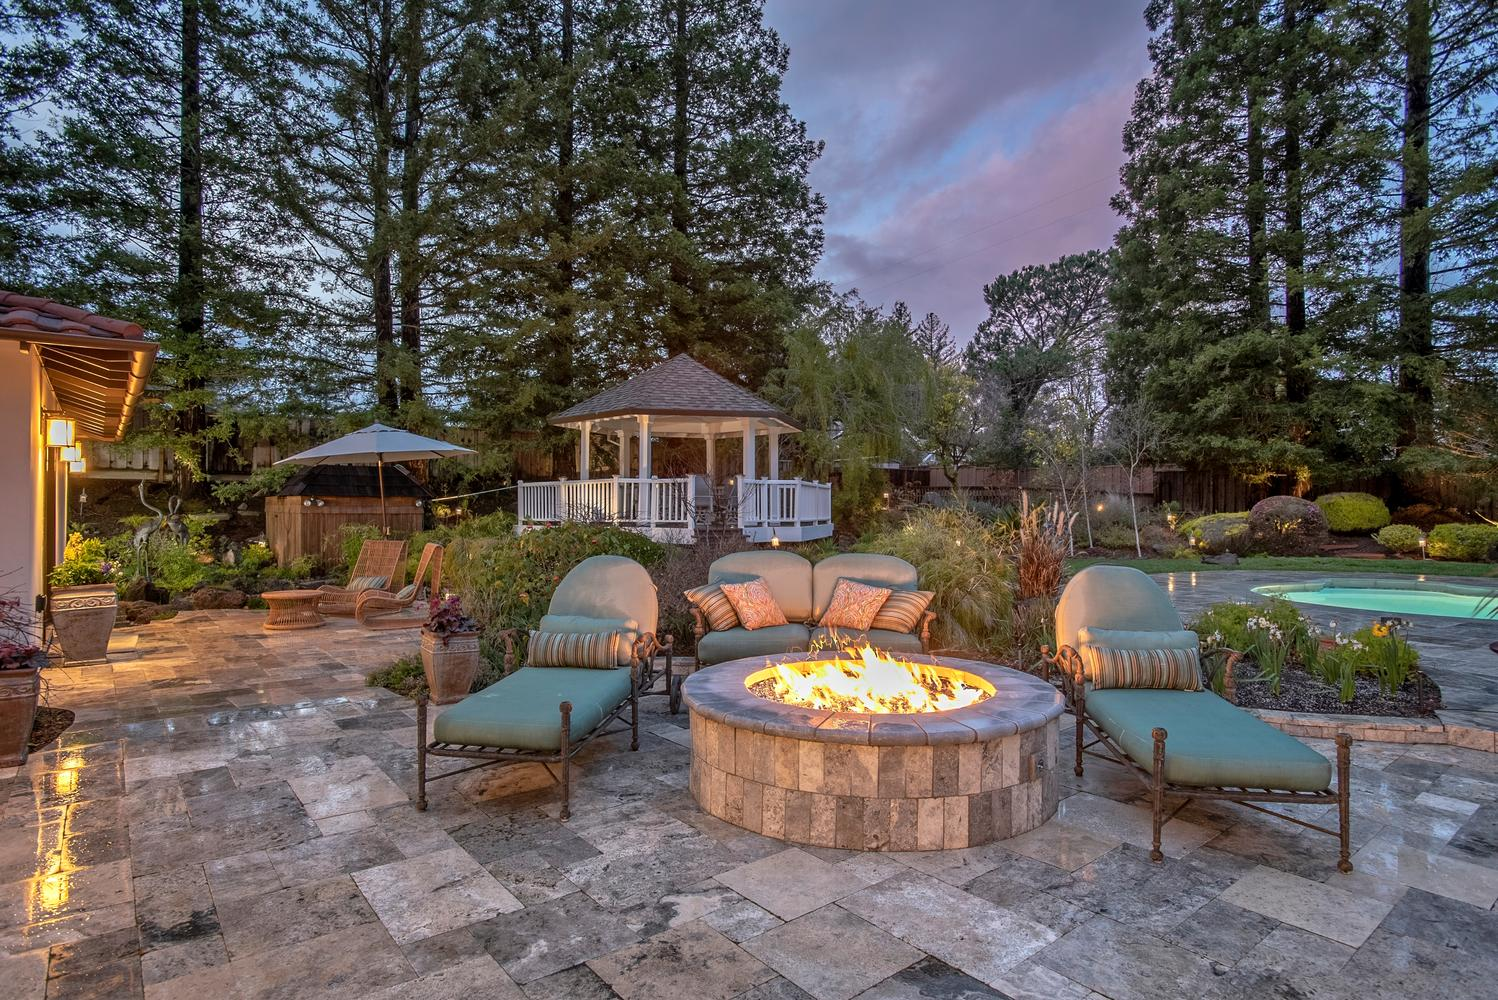 15977 Grandview Dr Monte-large-047-17-Back Patio Firepit at Dusk-1499x1000-72dpi.jpg